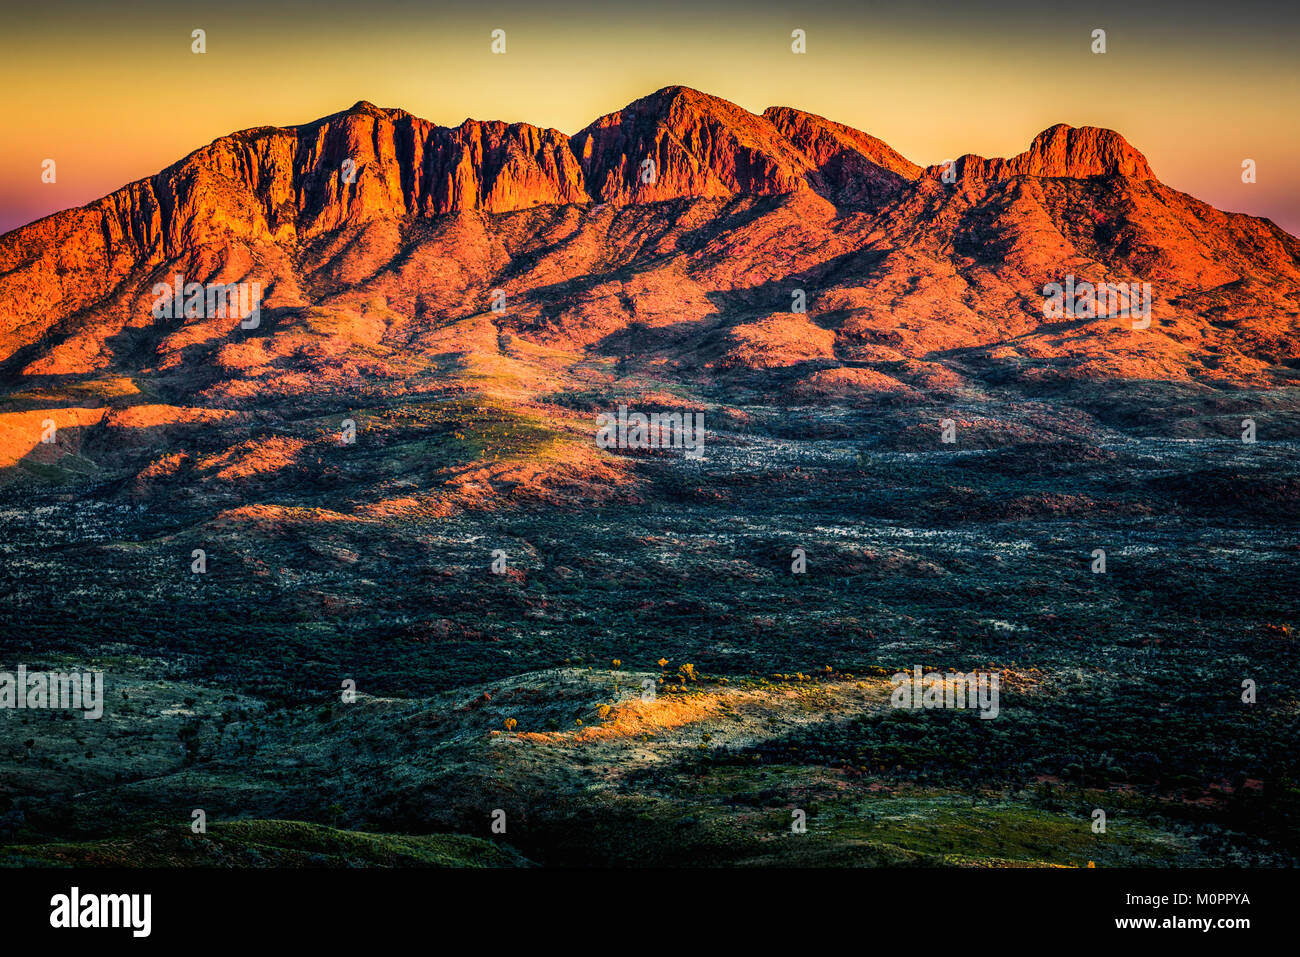 Mount Sonder from Hilltop Lookout at Sunrise. West Macdonnell Ranges, Northern Territory - Stock Image